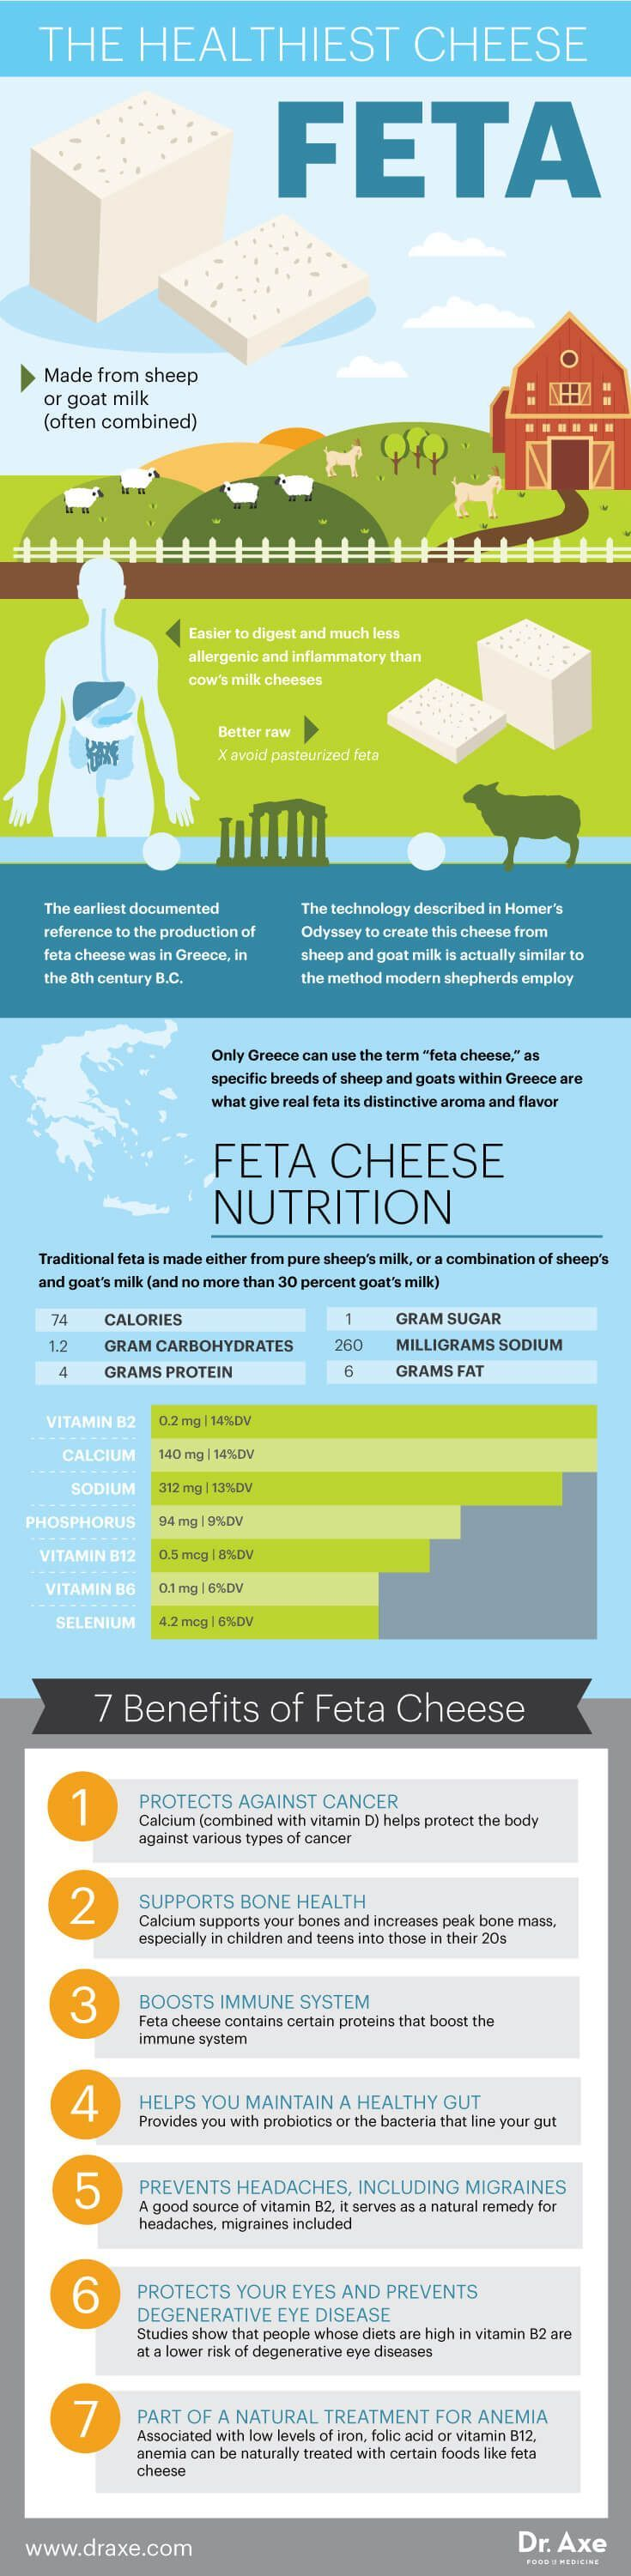 Feta Cheese Nutrition, Health Benefits & Recipes - Dr. Axe   https://draxe.com/feta-cheese-nutrition/